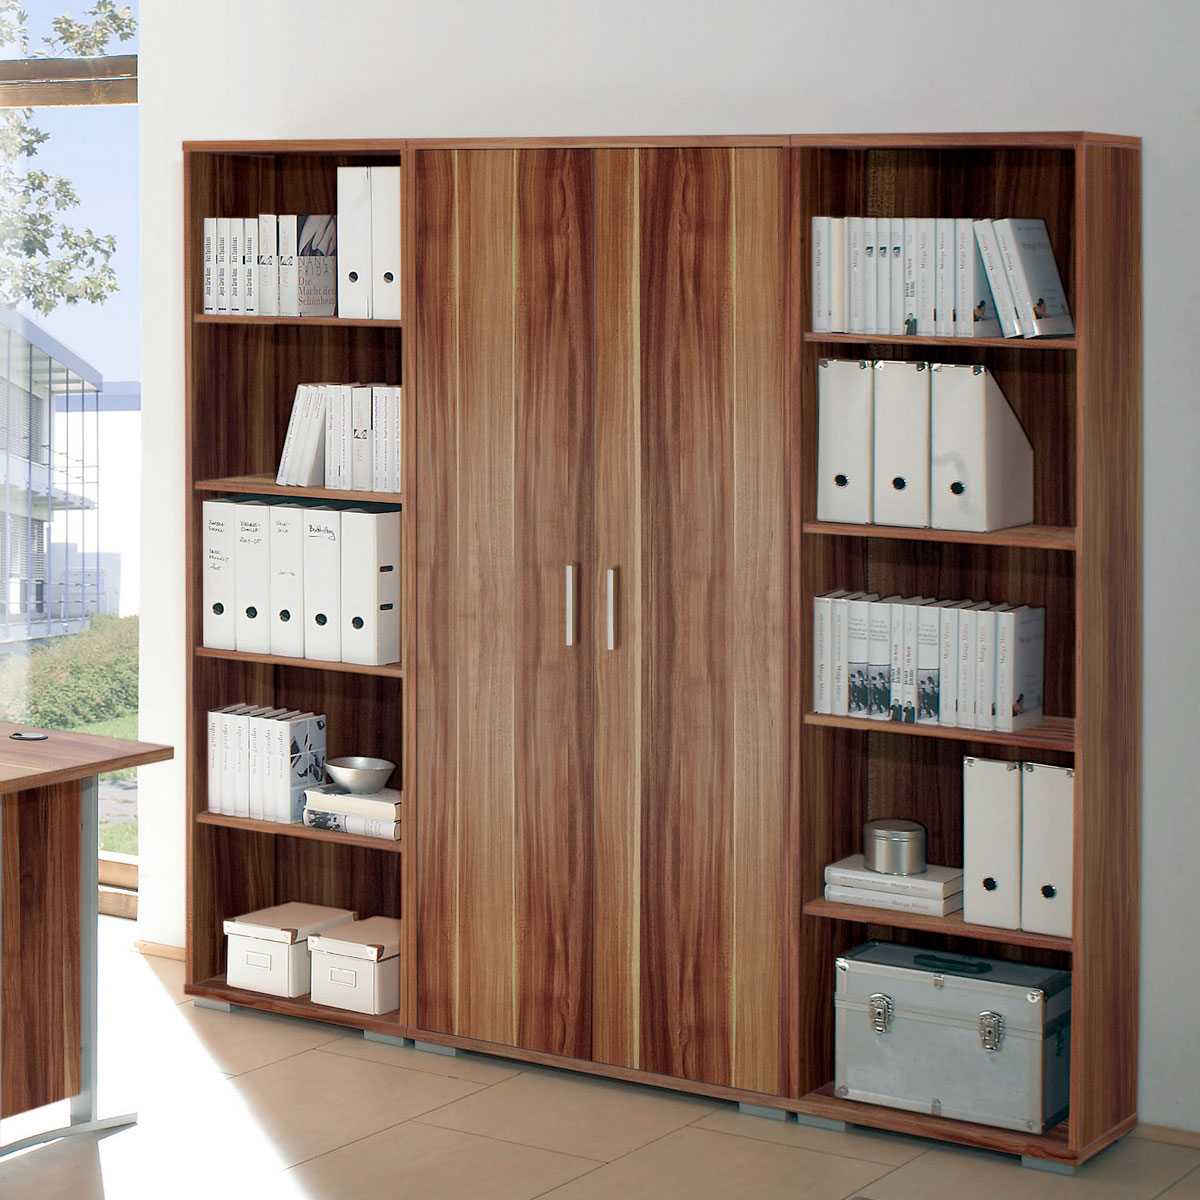 Büro Regalwand Regalwand Office Line Biz Regal Schrank In Walnuss Dekor